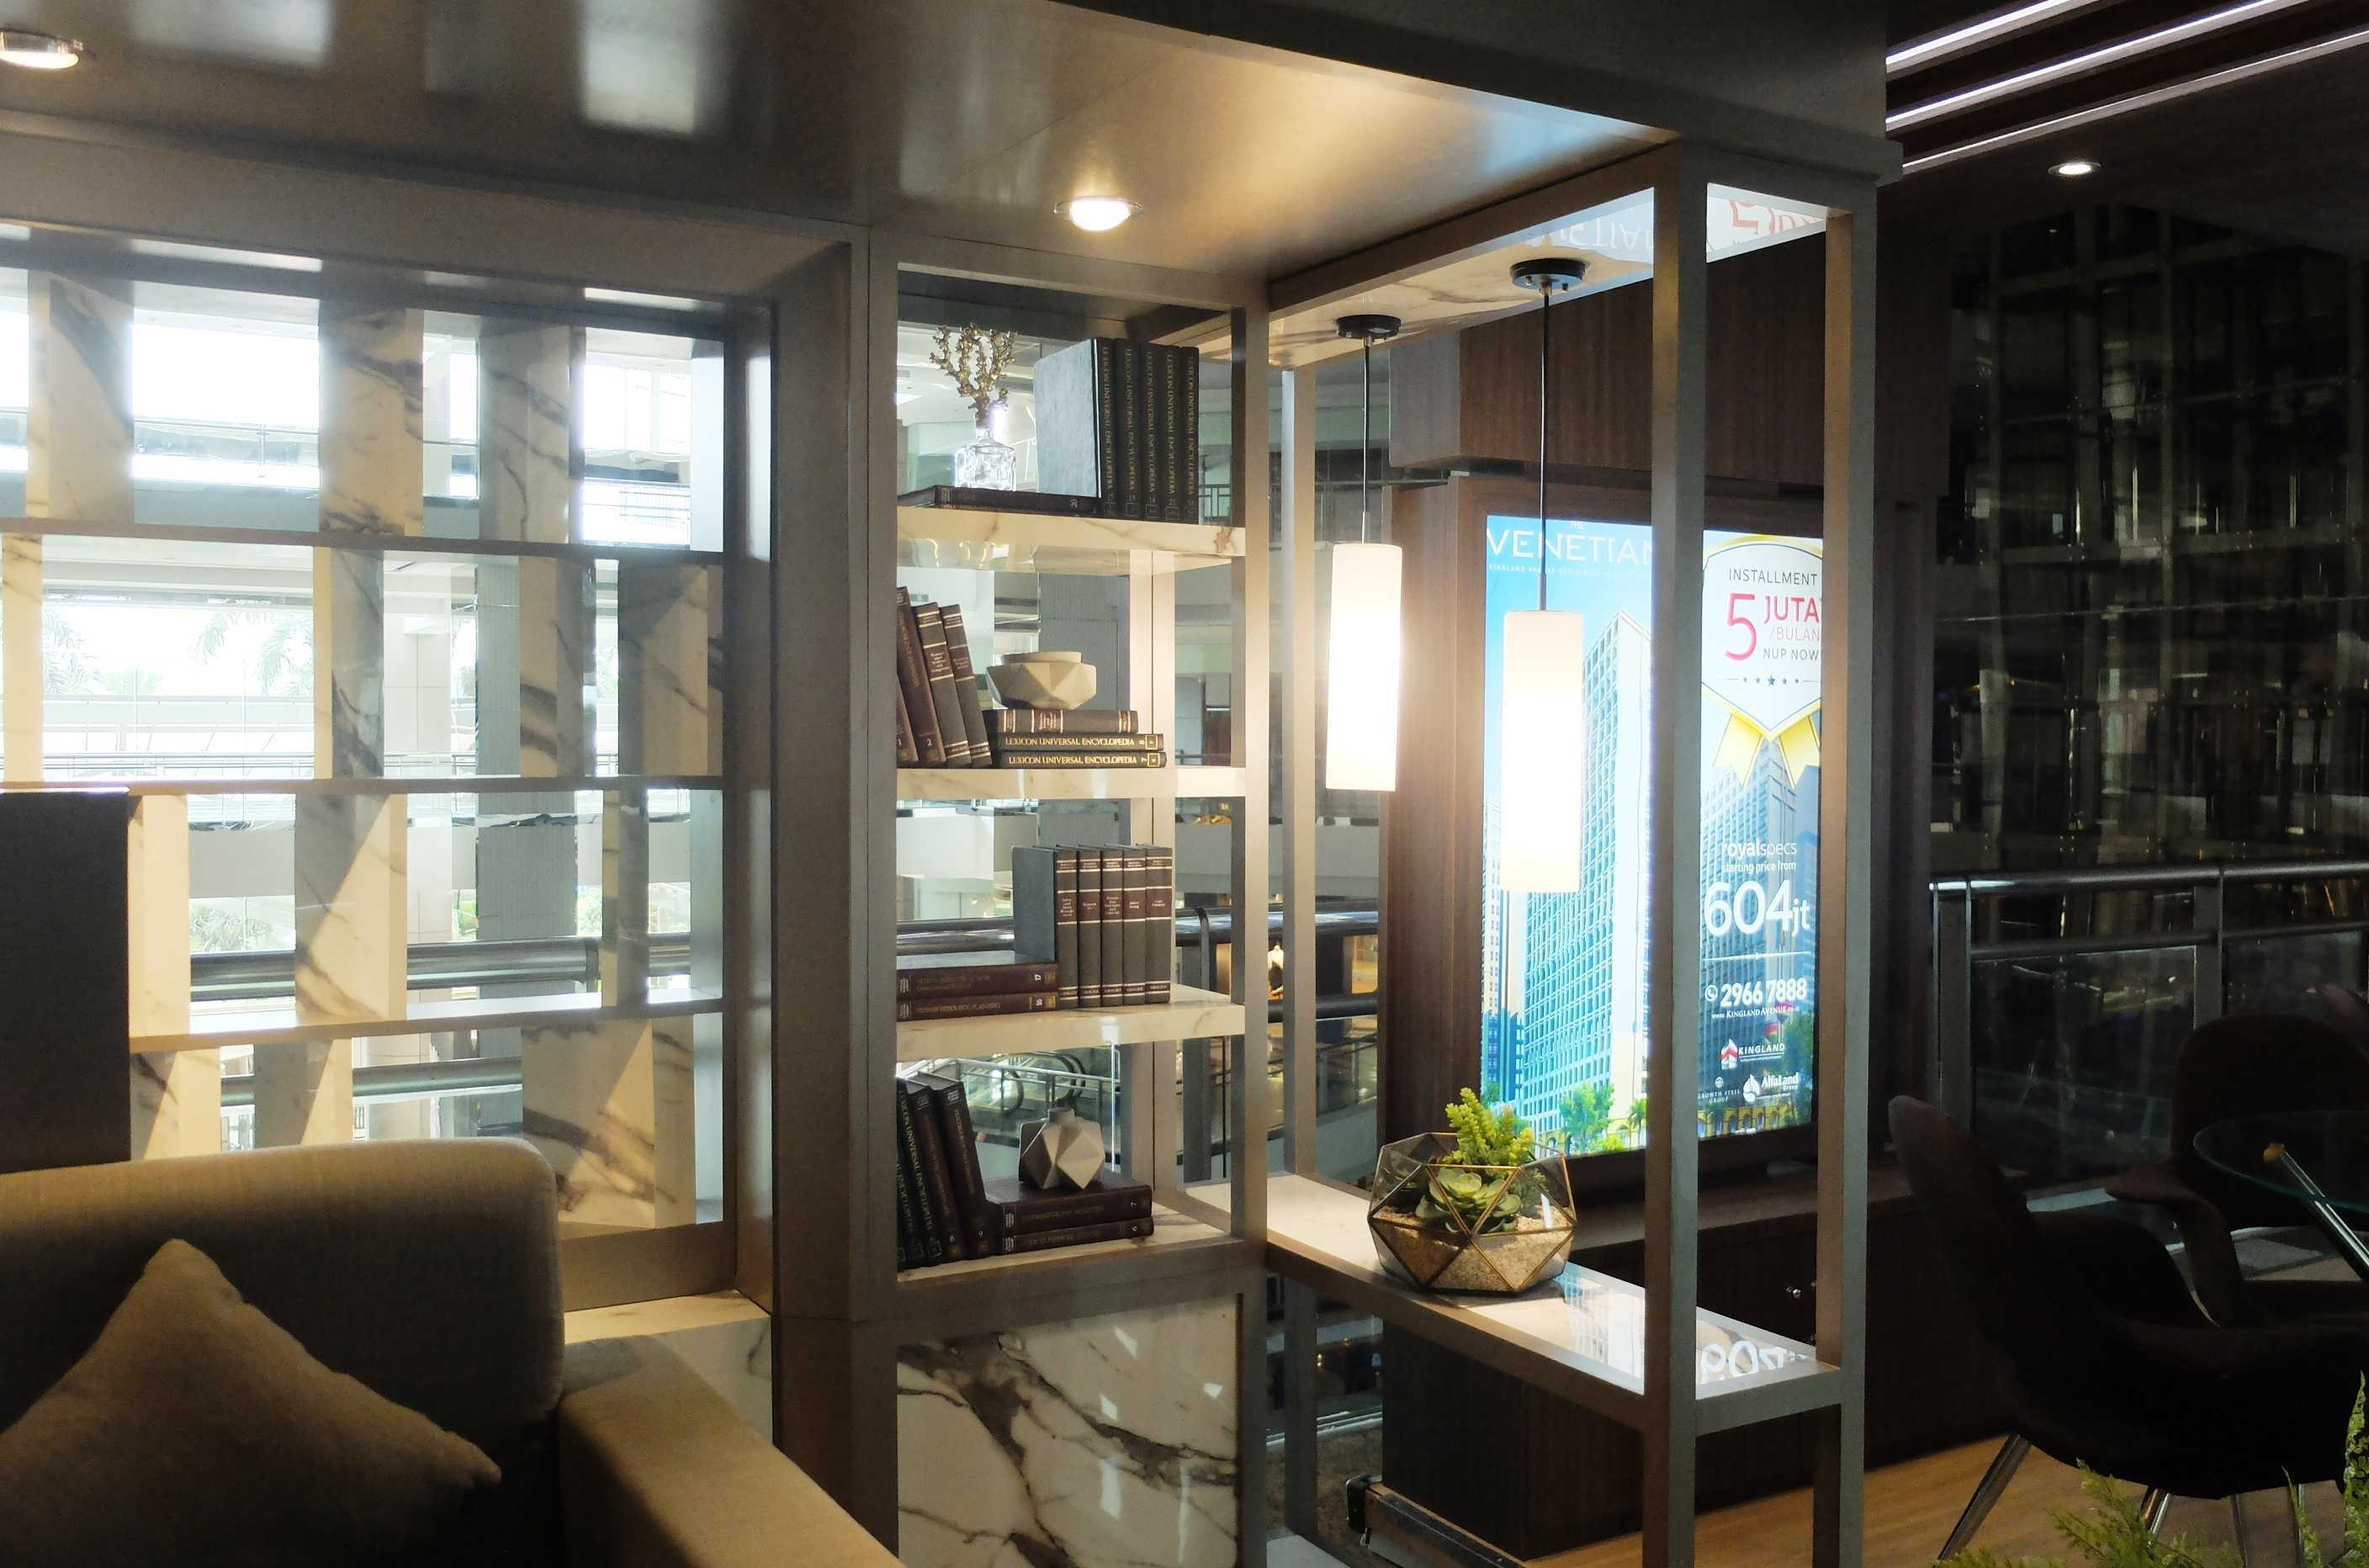 Pt. Modula The Lana Jakarta Jakarta Booth Type B Minimalis The Size Of The Booth's Space Is 4M X 3M 26318